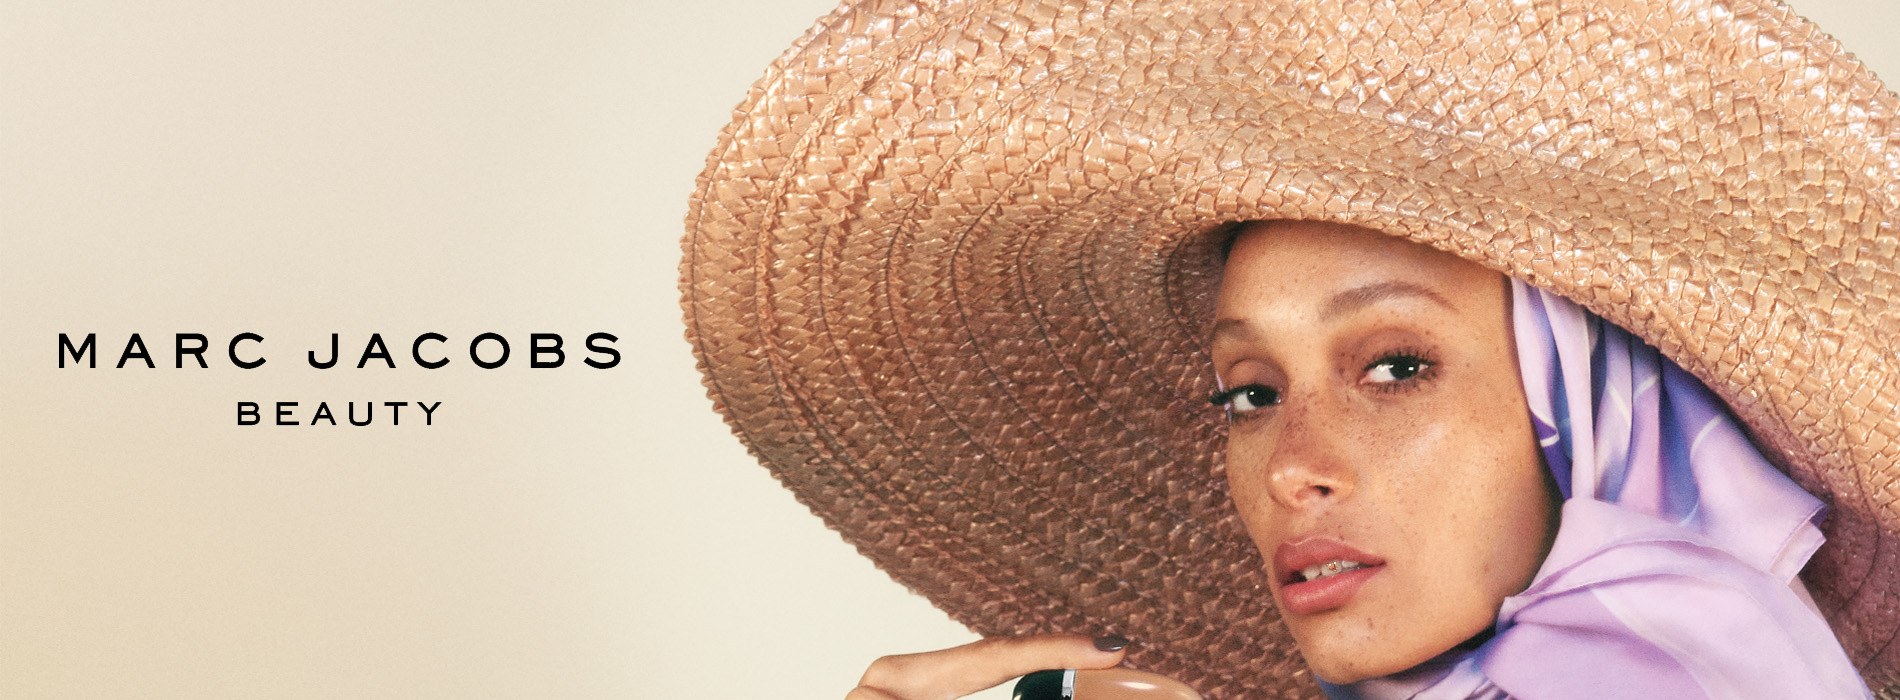 Marc Jacobs Beauty Debuts Adwoa Aboah Campaign Image For New Shameless